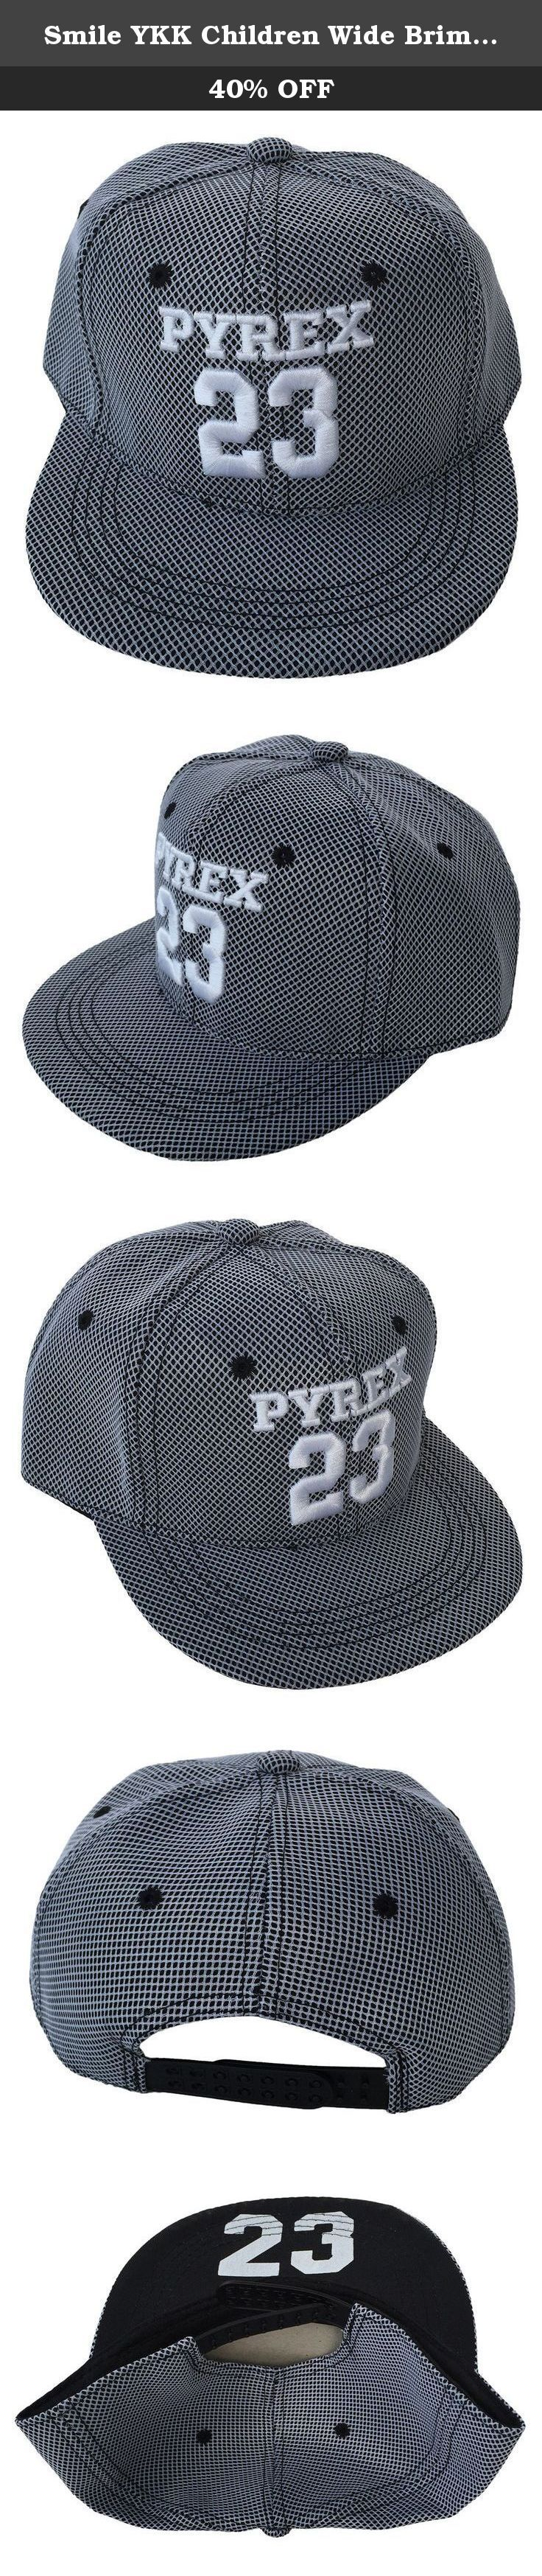 Smile YKK Children Wide Brim Adjustable Hip-hop Baseball Cap Light Black. Material:Cotton blend Head circumference 52-55cm Not only can keep child in style but also keep child from sunshine Great for summertime outdoor sports Comfortable and breathable to wear .